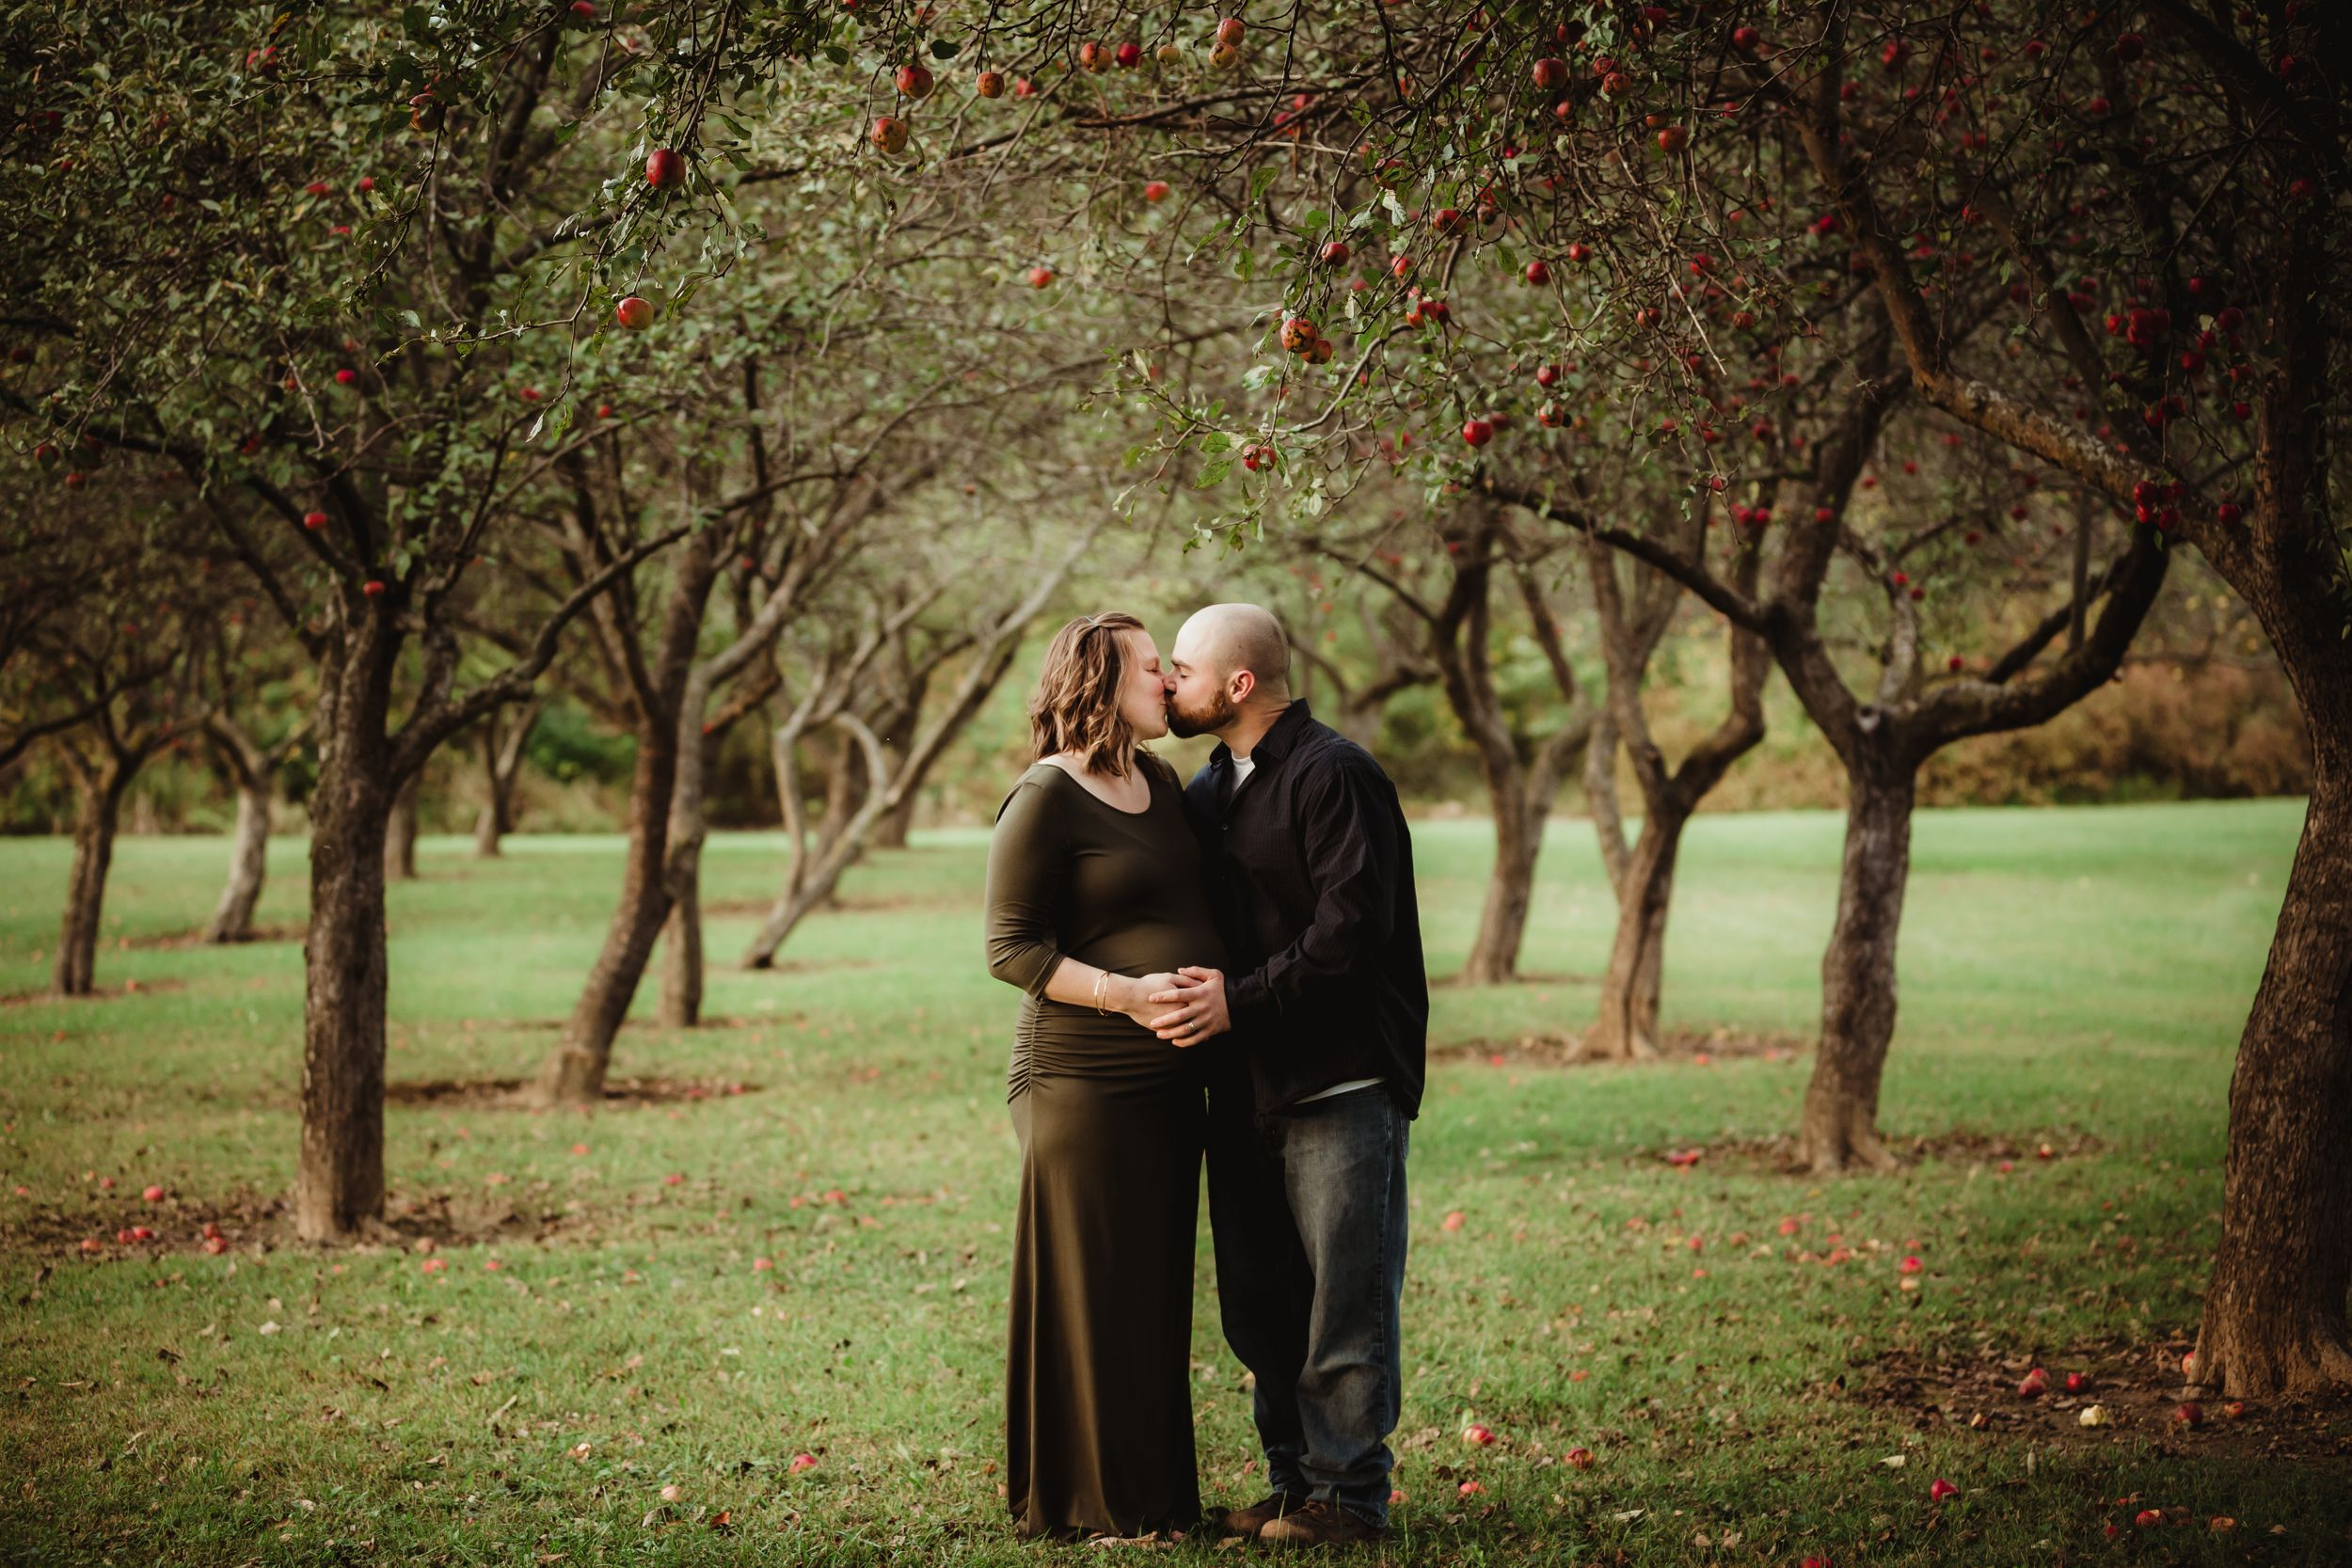 Pregnant woman and her husband kissing each other standing between rows of apple trees.